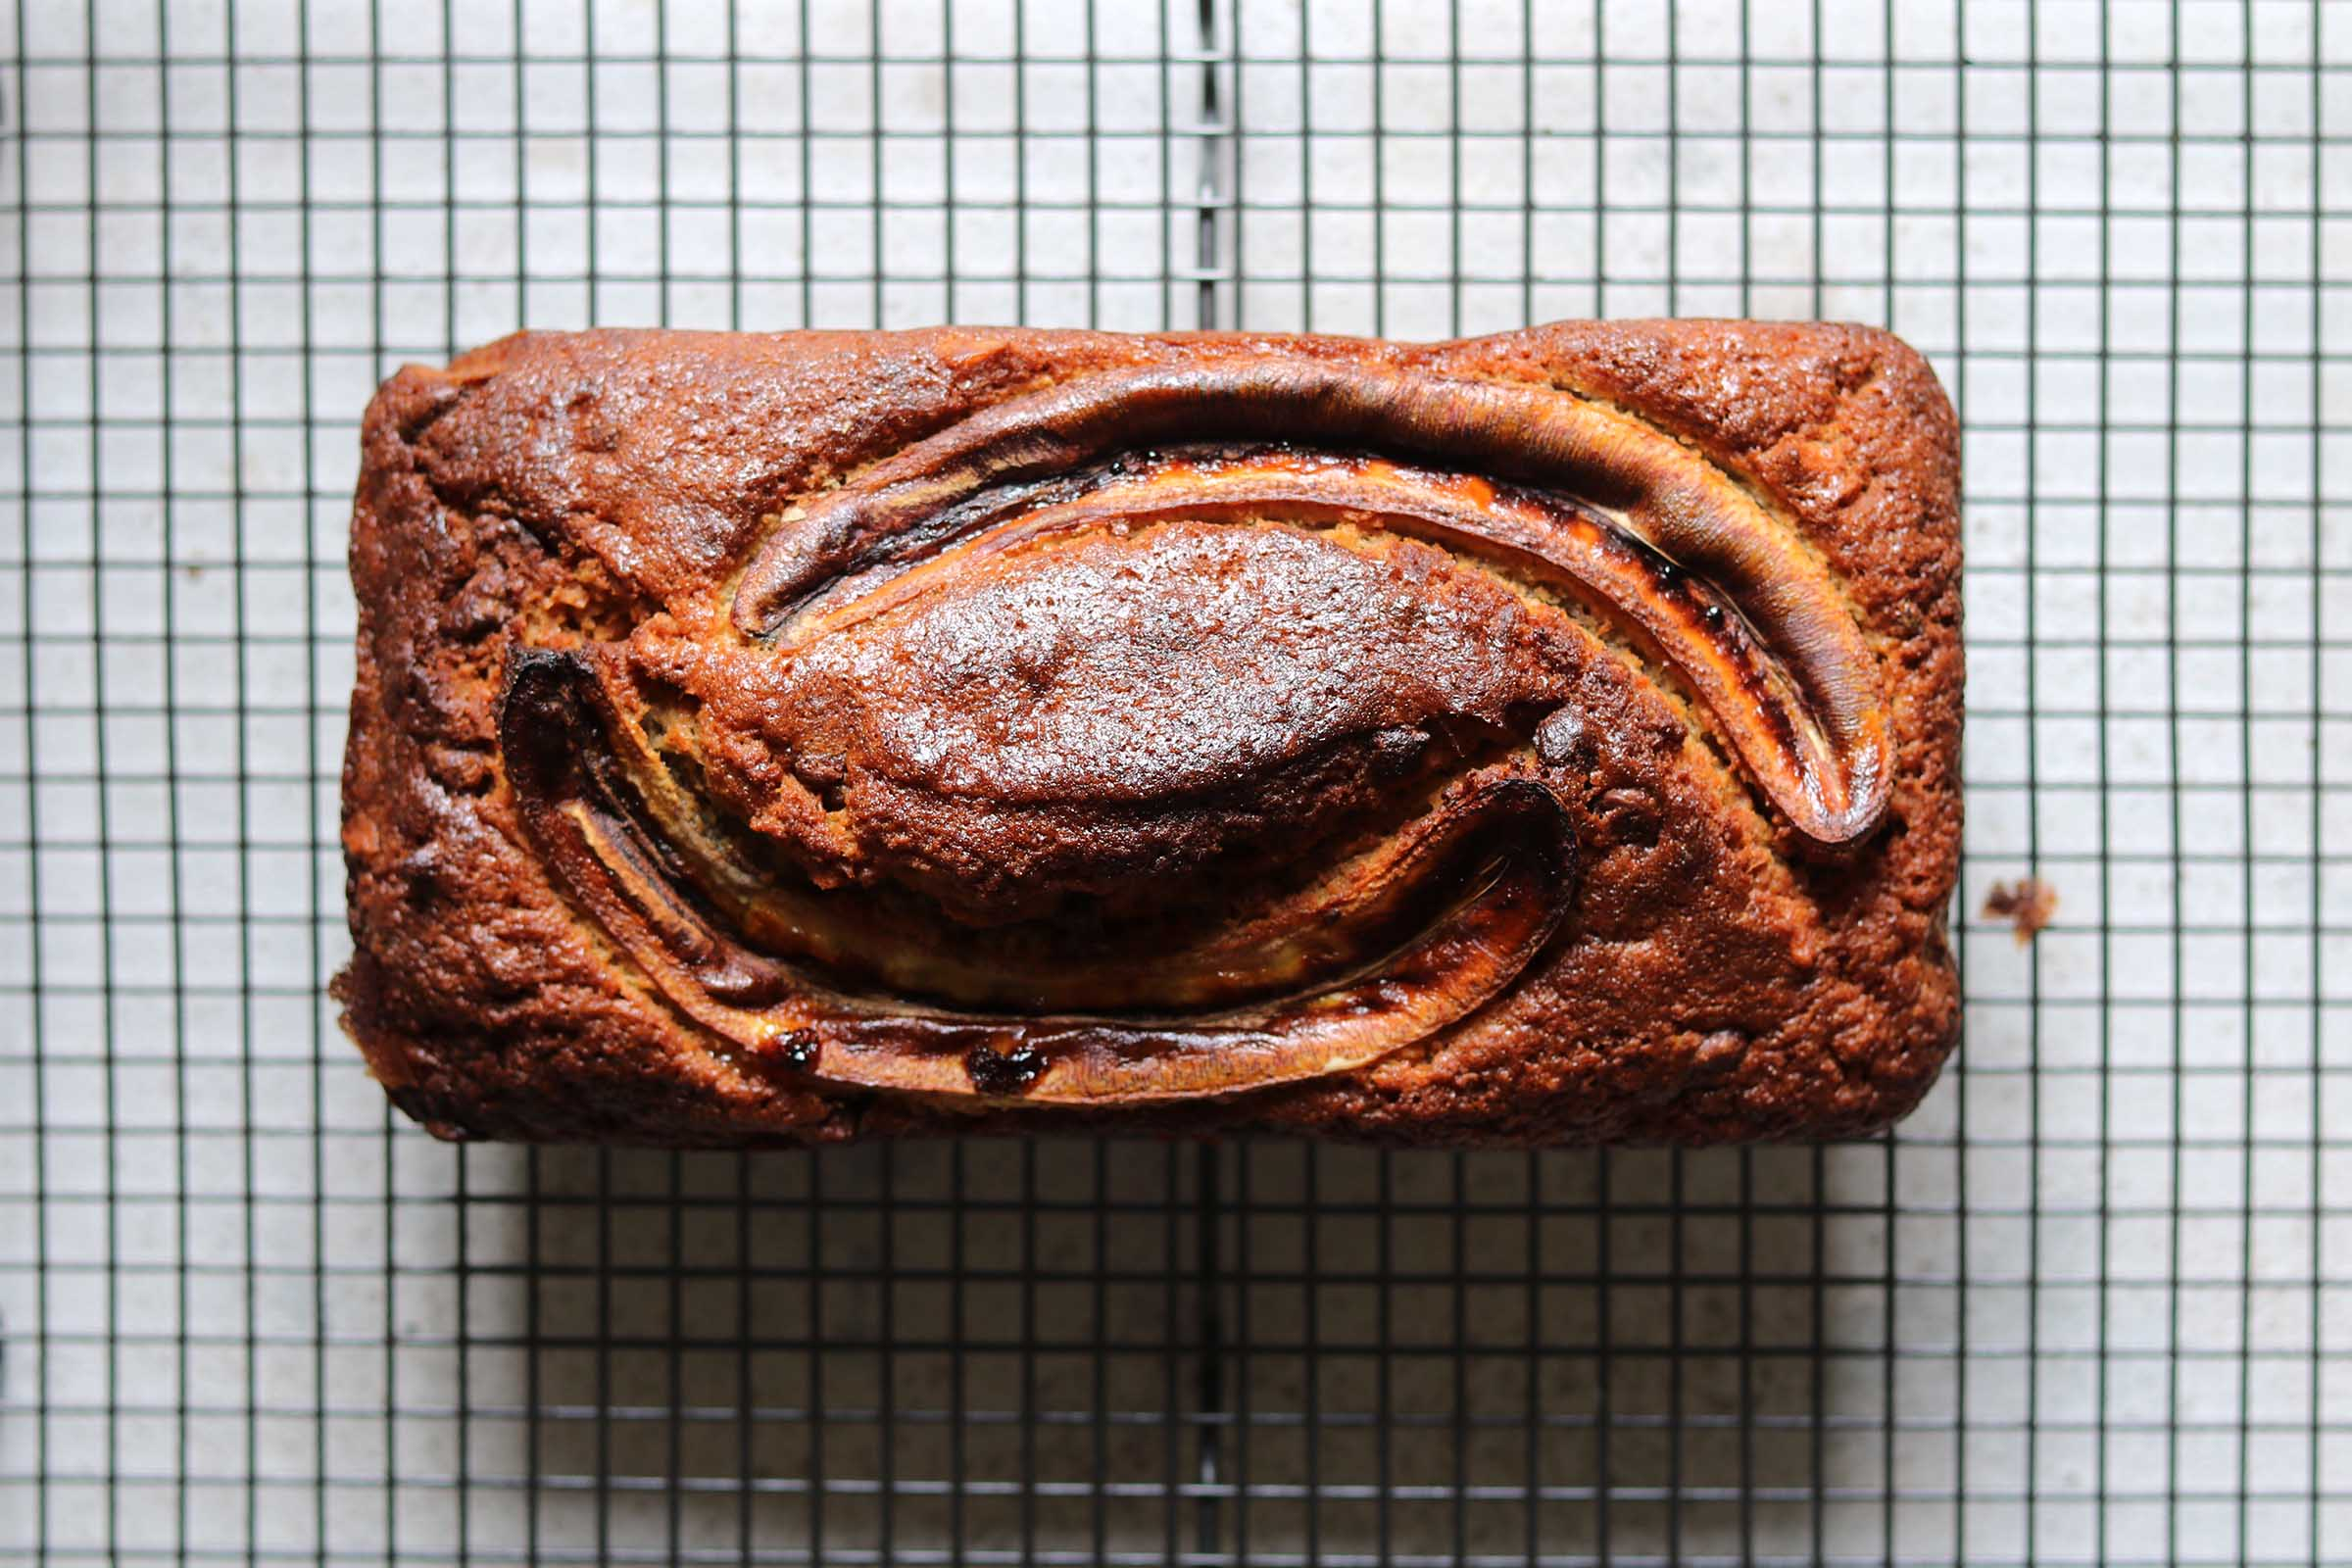 Banana Bread with Chocolate Chips and Walnuts - The Last Food Blog